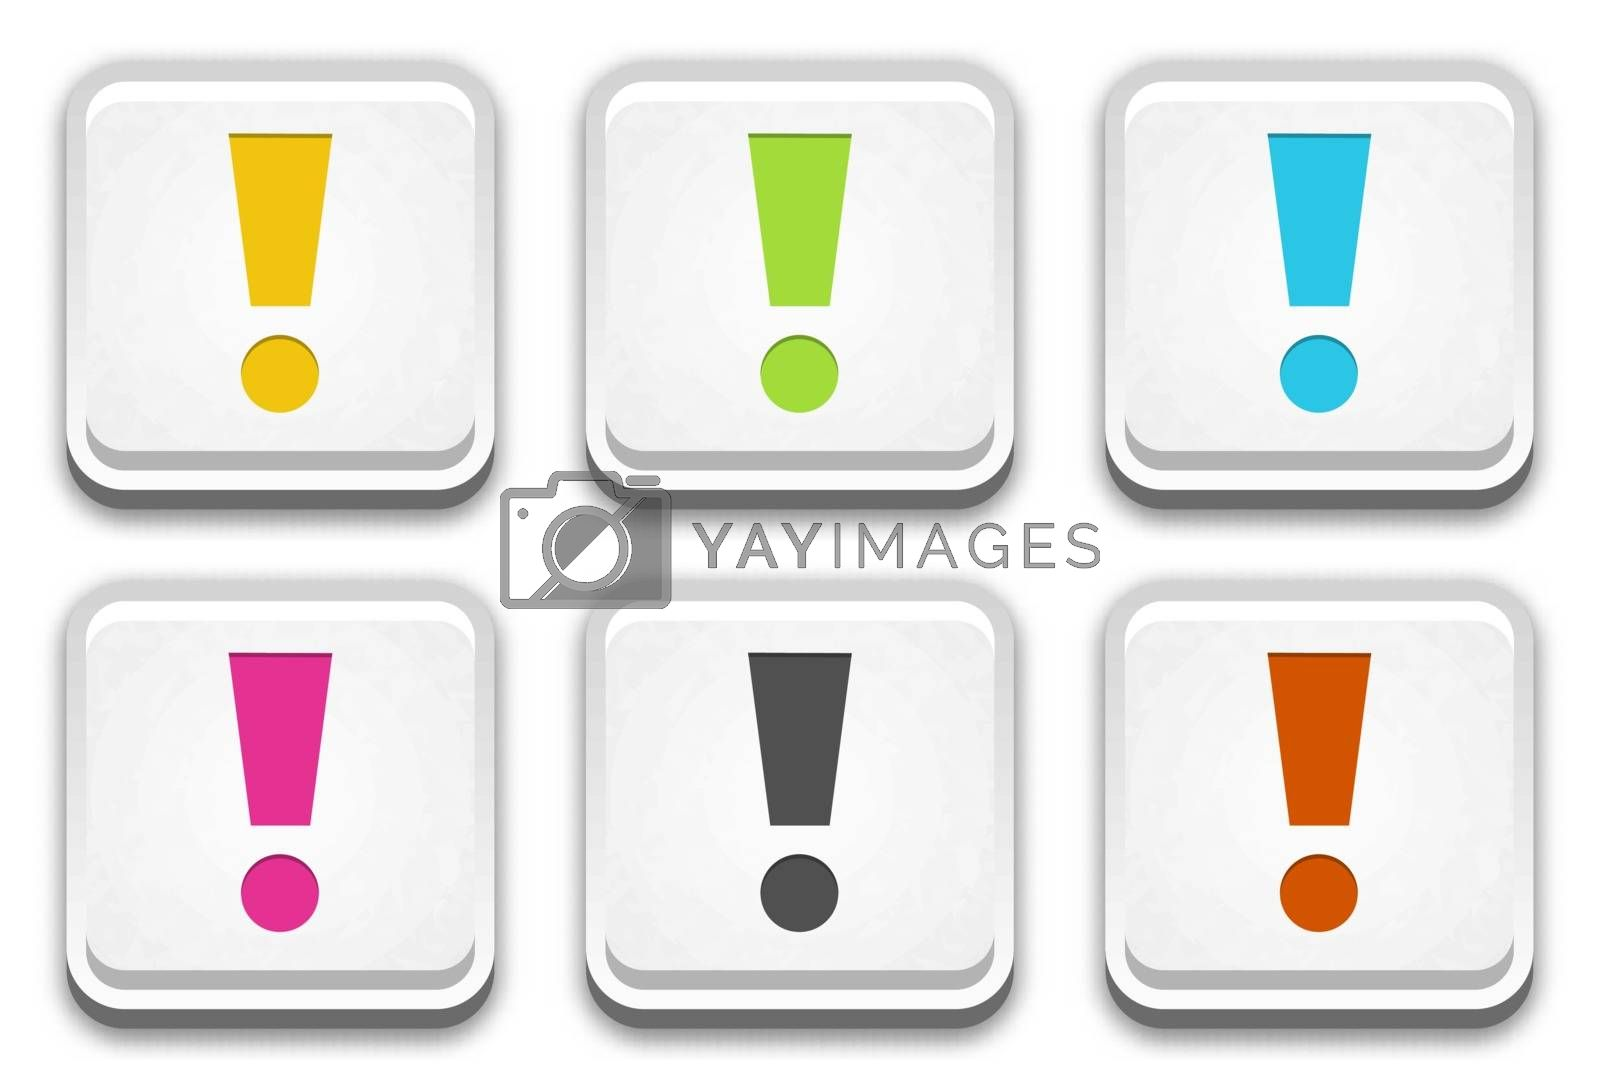 Royalty free image of the button set with exclamation mark by madtom